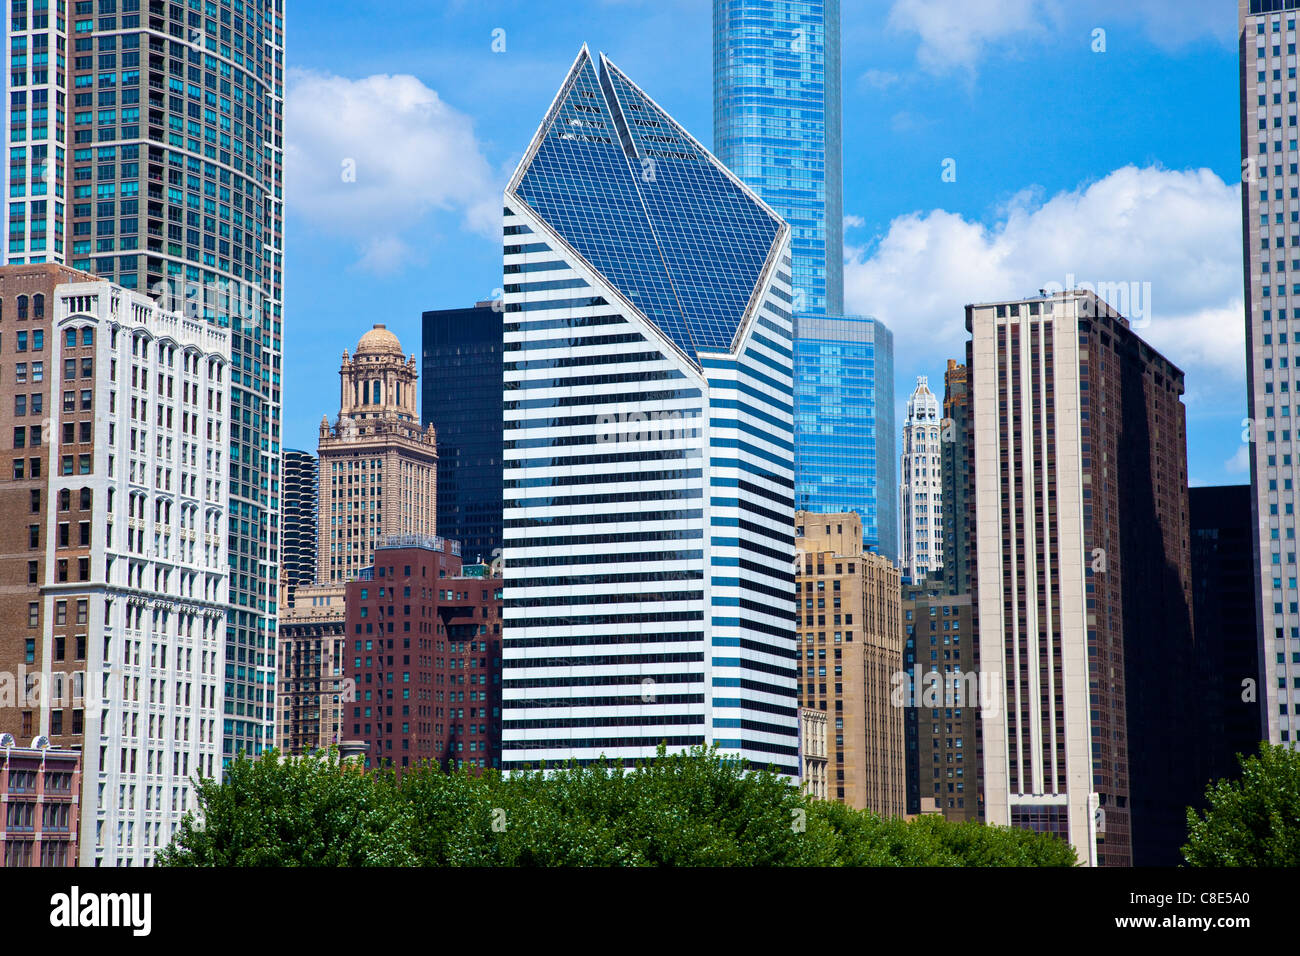 Smurfit-Stone Building, Chicago, Illinois - Stock Image